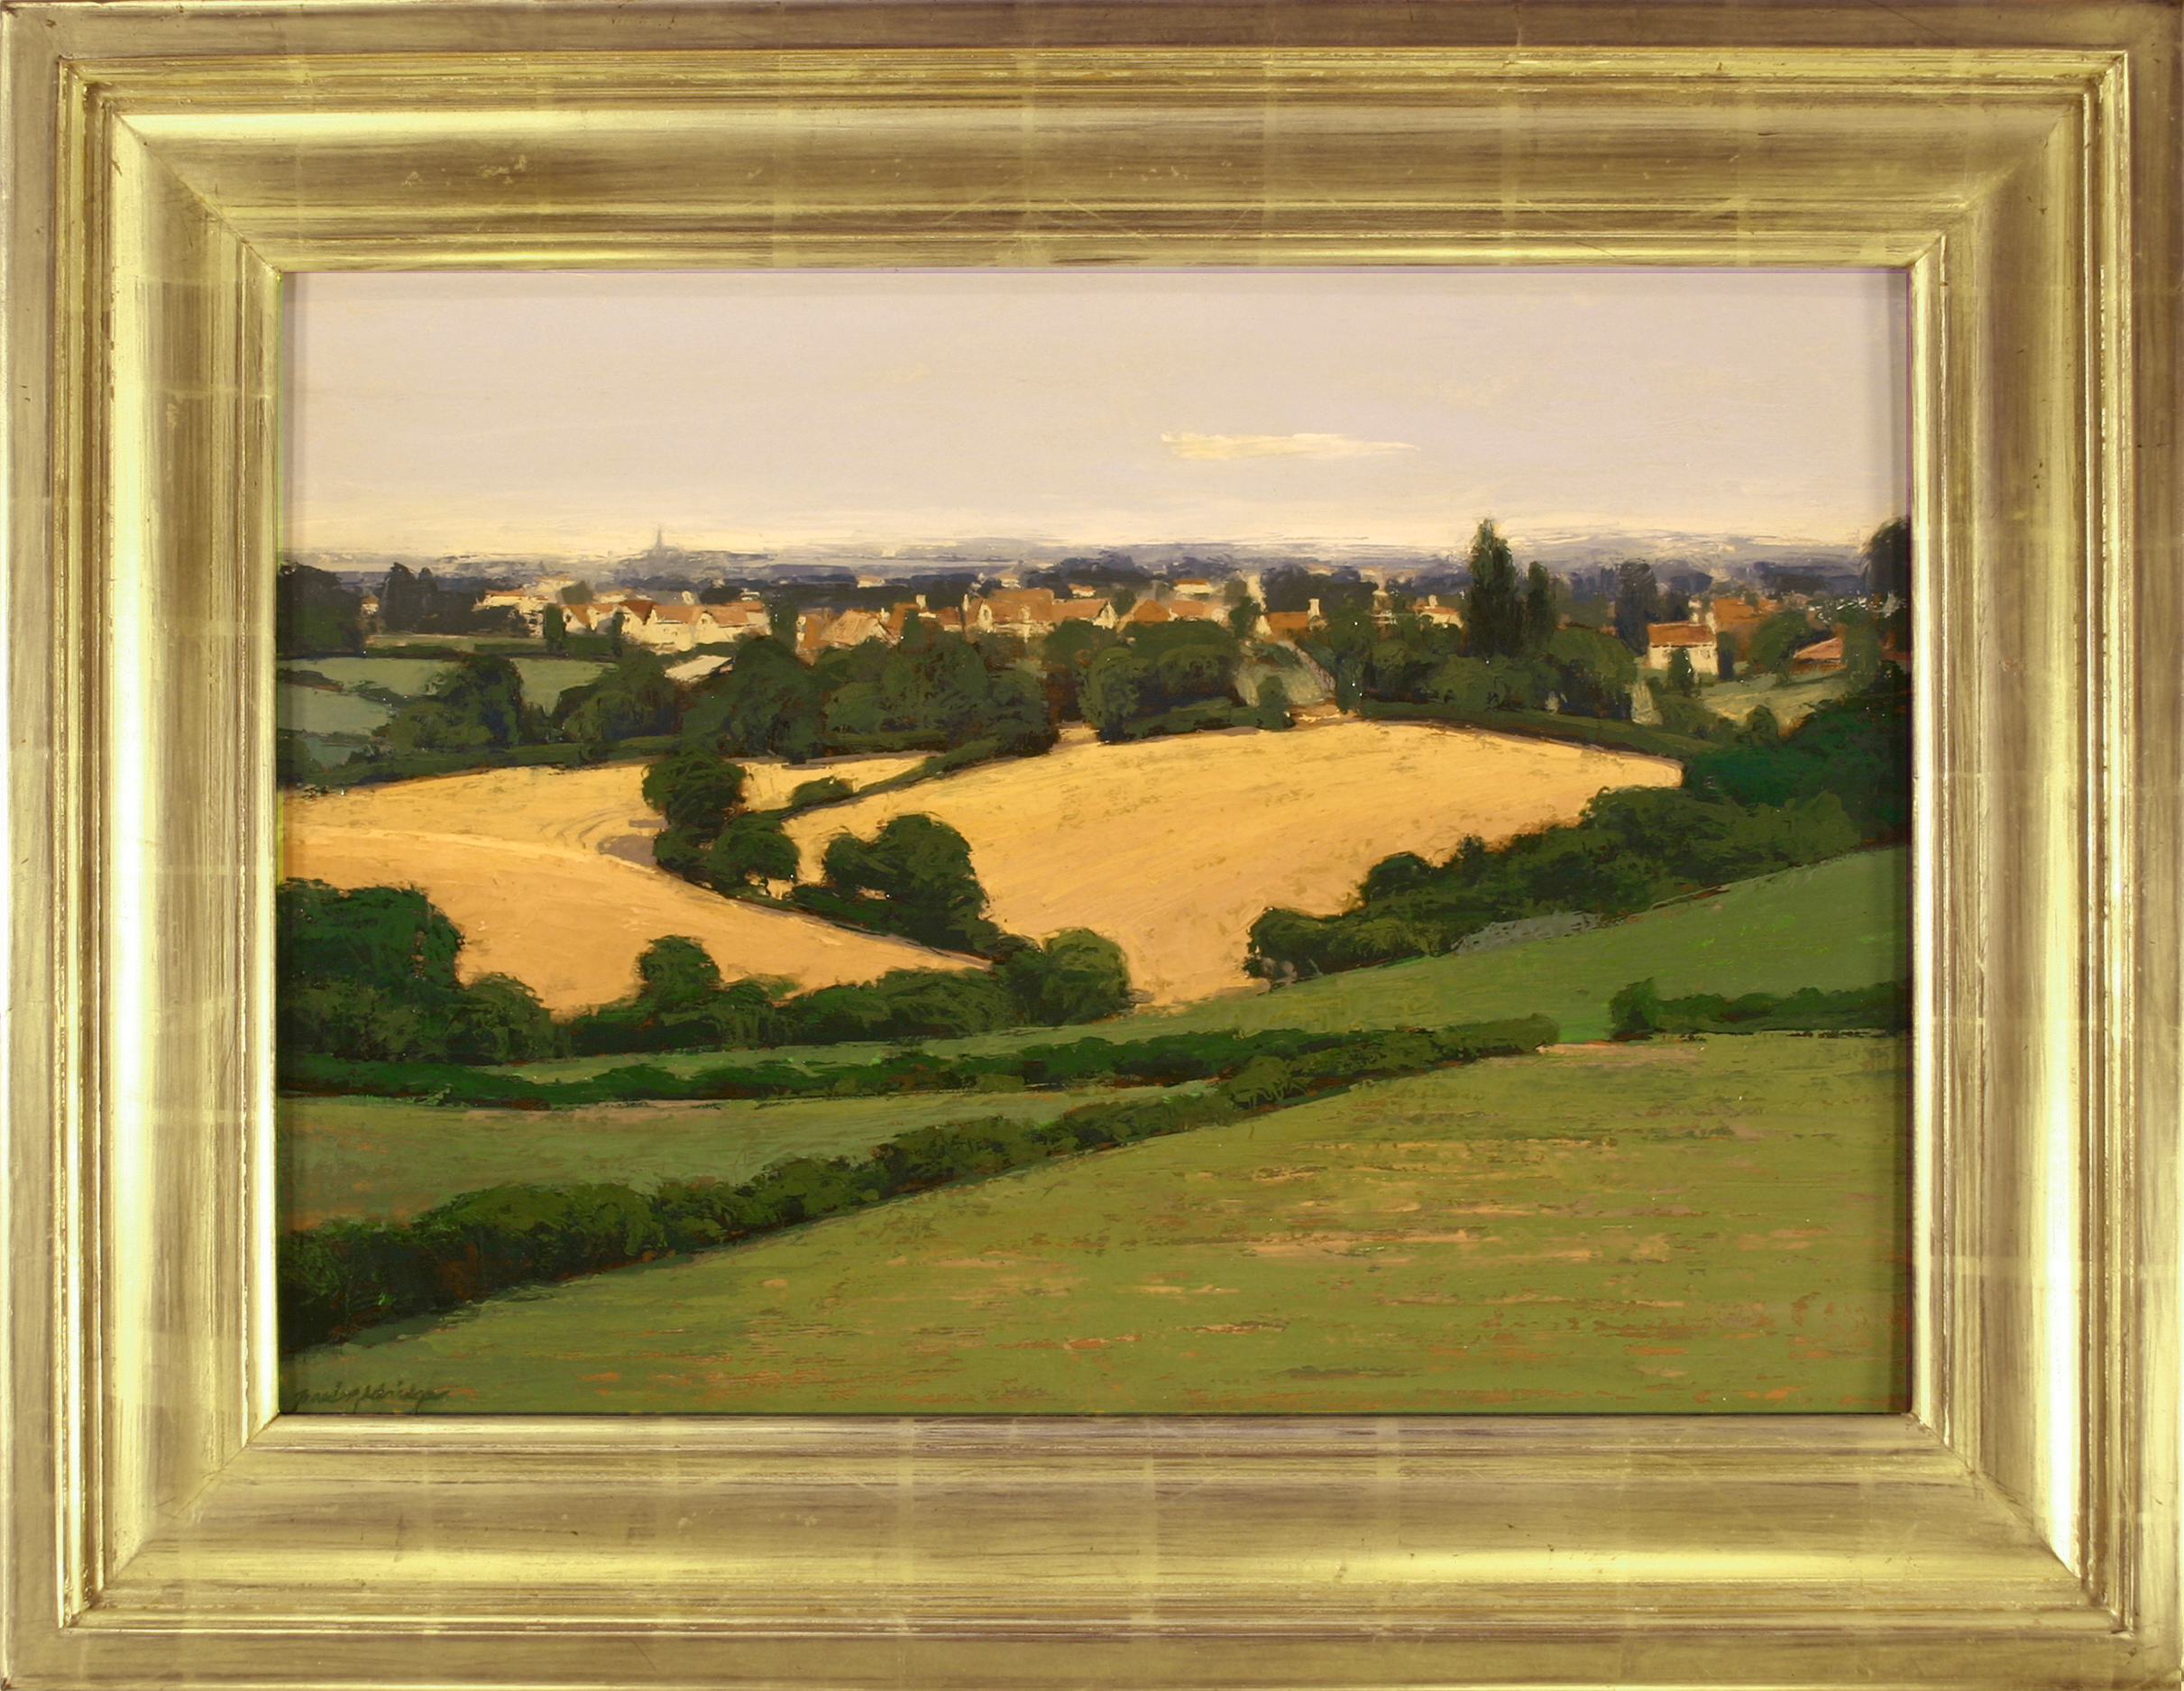 Countryside withVillage, 15.5 x 22.5, p, 22 x 28.5 f.jpg